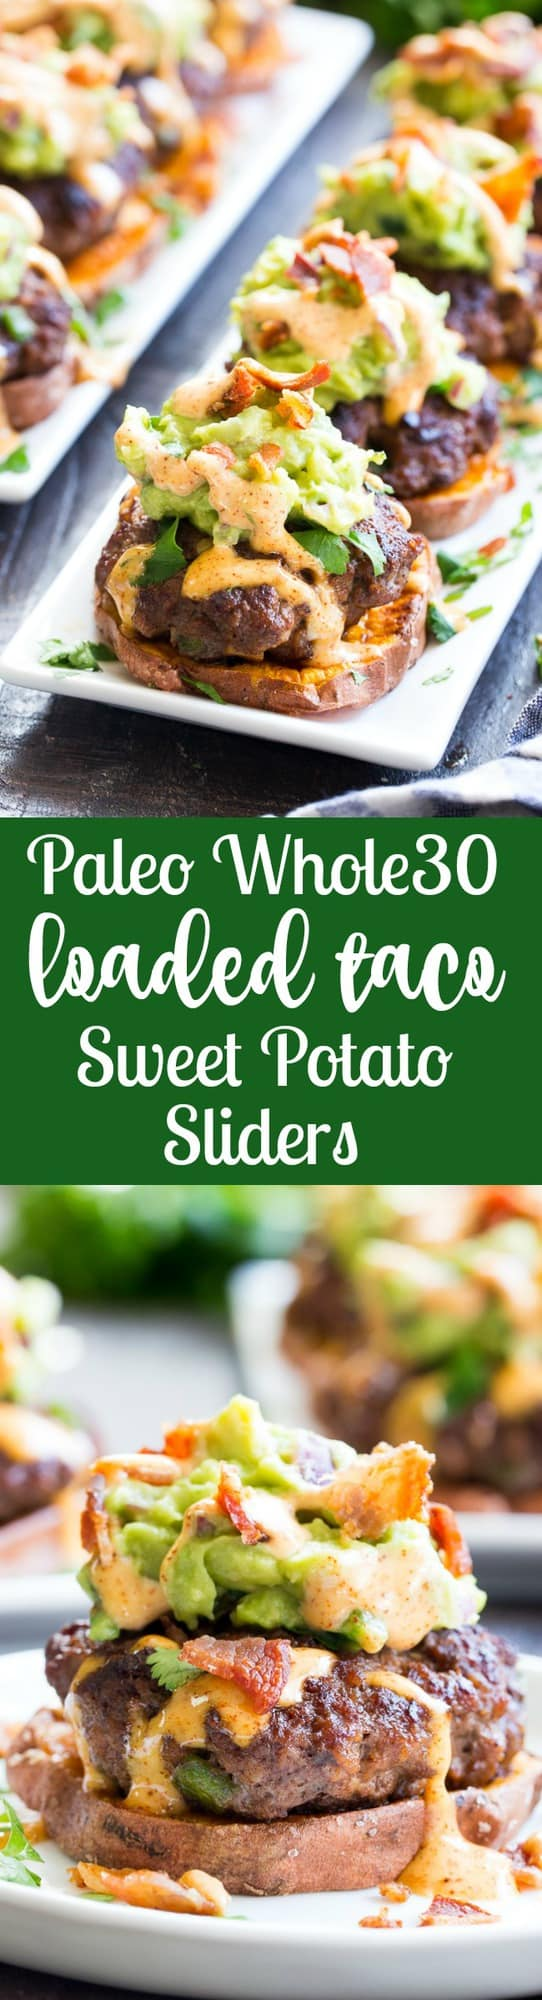 "These sweet potato sliders are loaded with goodies!  Taco seasoned burger patties over roasted sweet potato ""buns"" topped with an easy guacamole, chipotle ranch and crumbled bacon.  Perfect as an appetizer, party food or a fun meal!  Paleo and Whole30 compliant, family approved!"